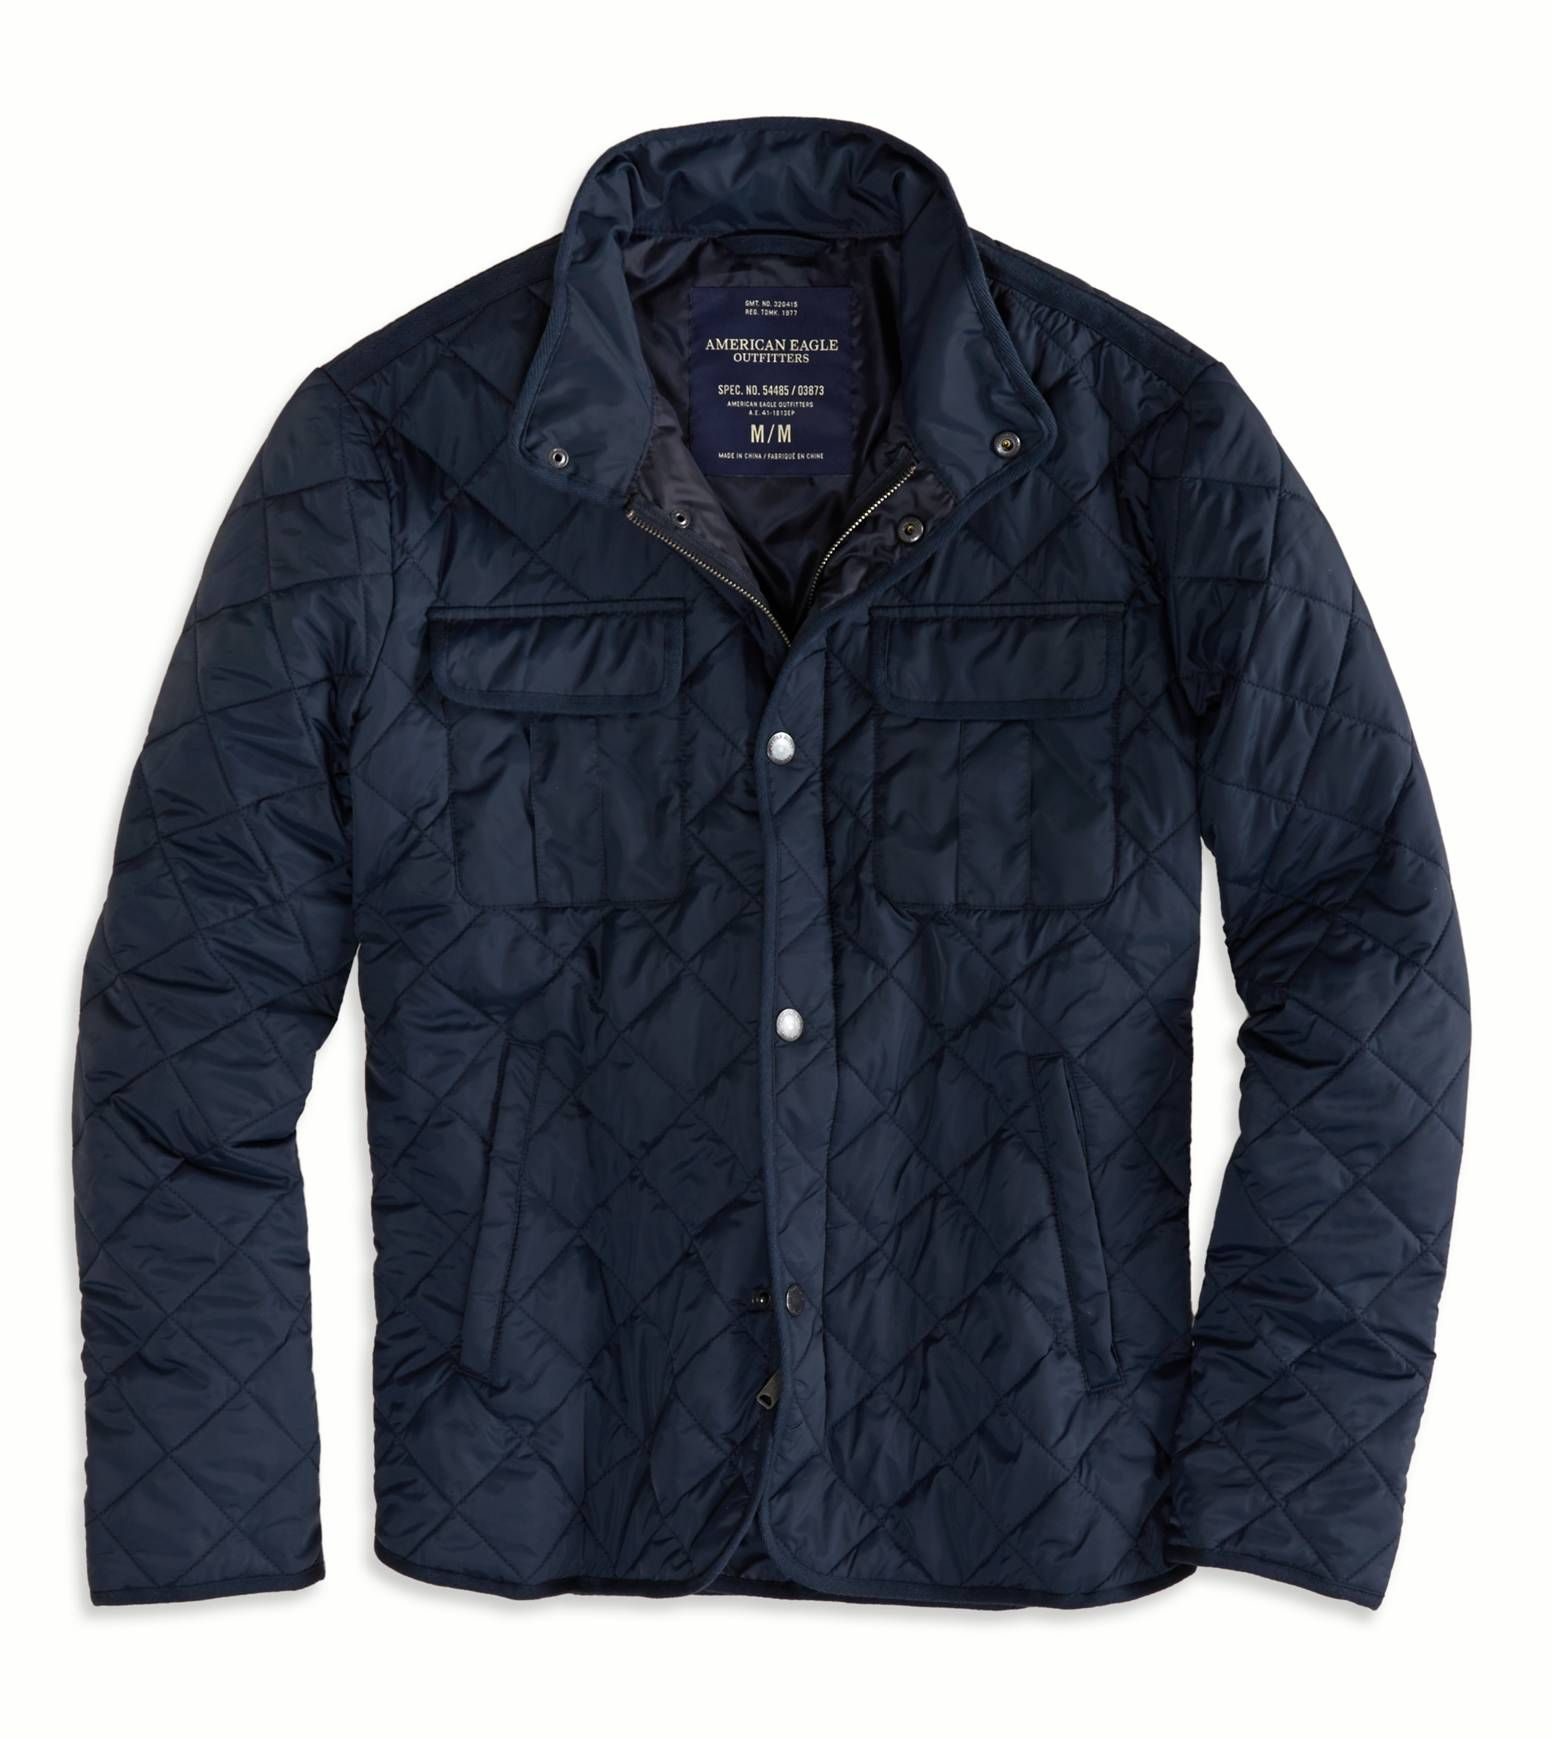 American Eagle Quilted Jacket Navy 62 97 Quilted Jacket Jackets Mens Outfitters [ 1739 x 1553 Pixel ]